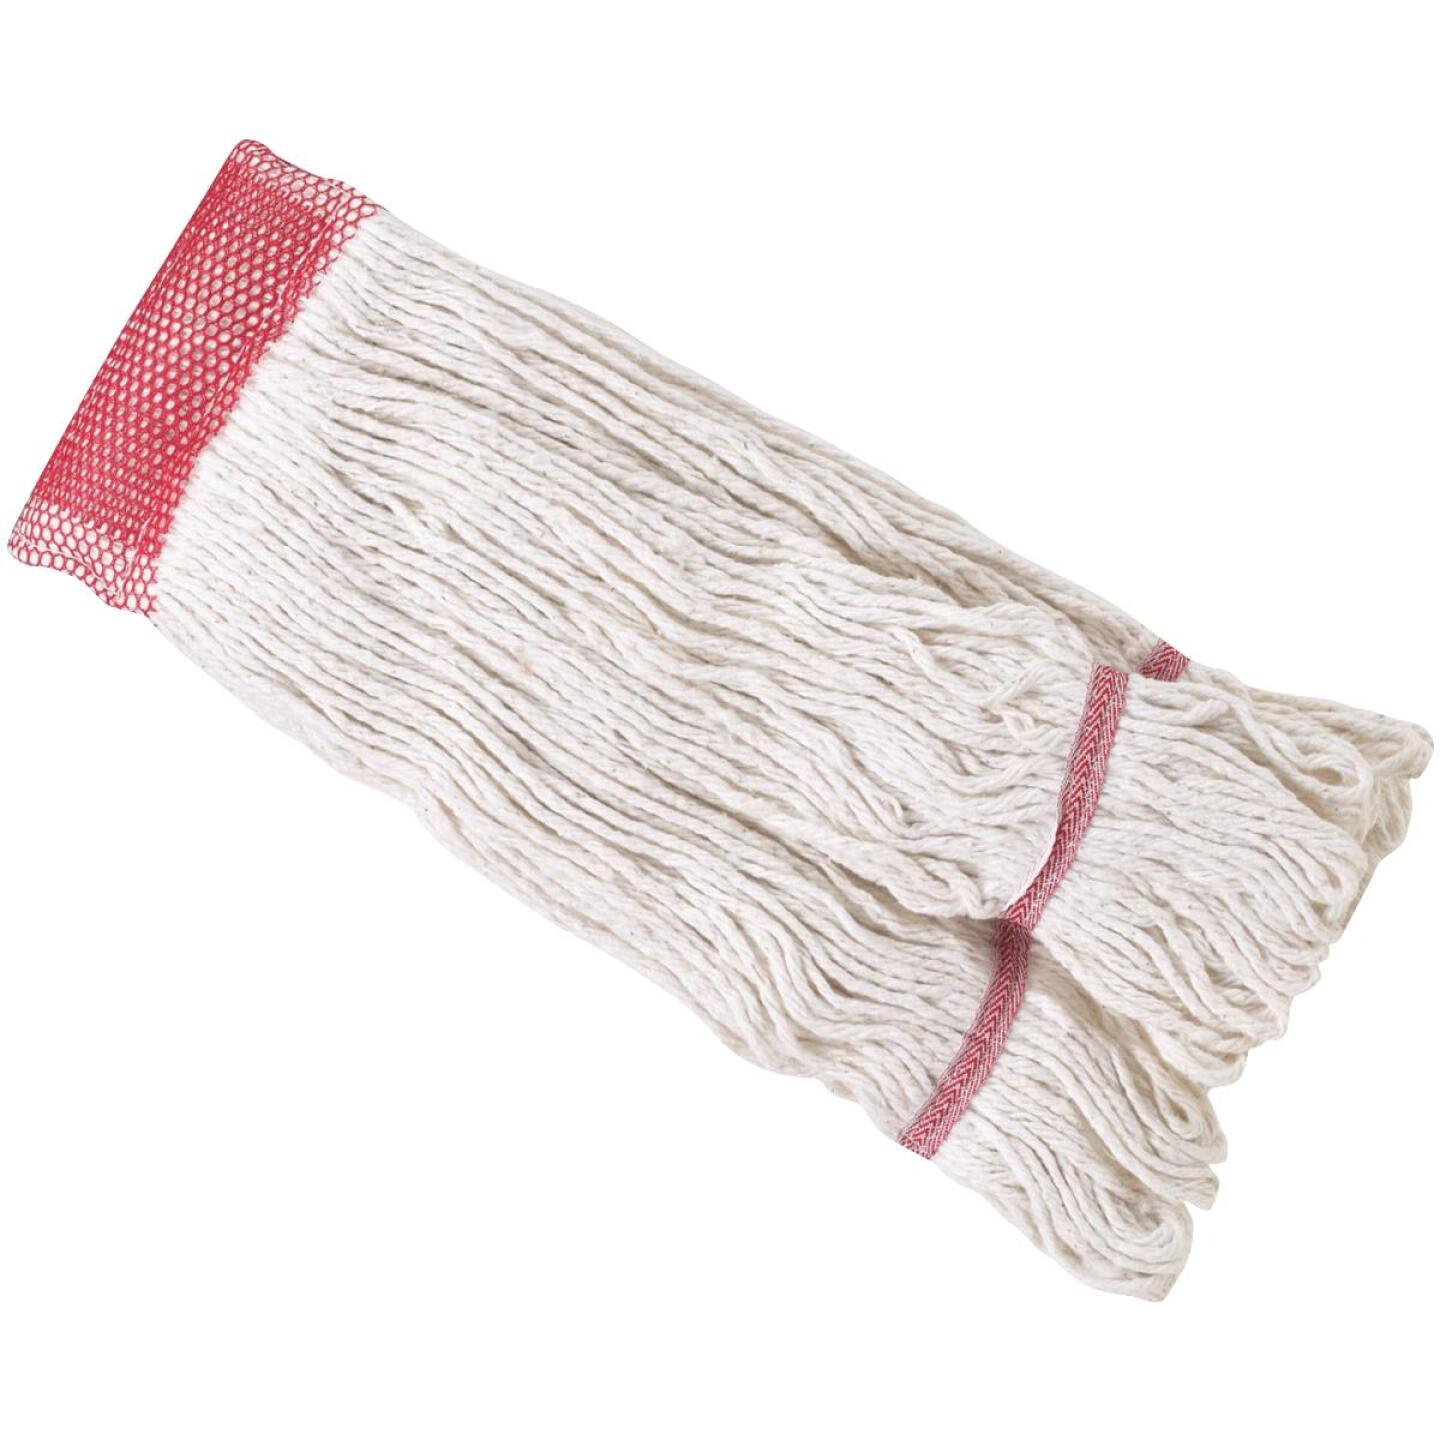 Nexstep Commercial 24 Oz. Cotton Mop Head Image 1